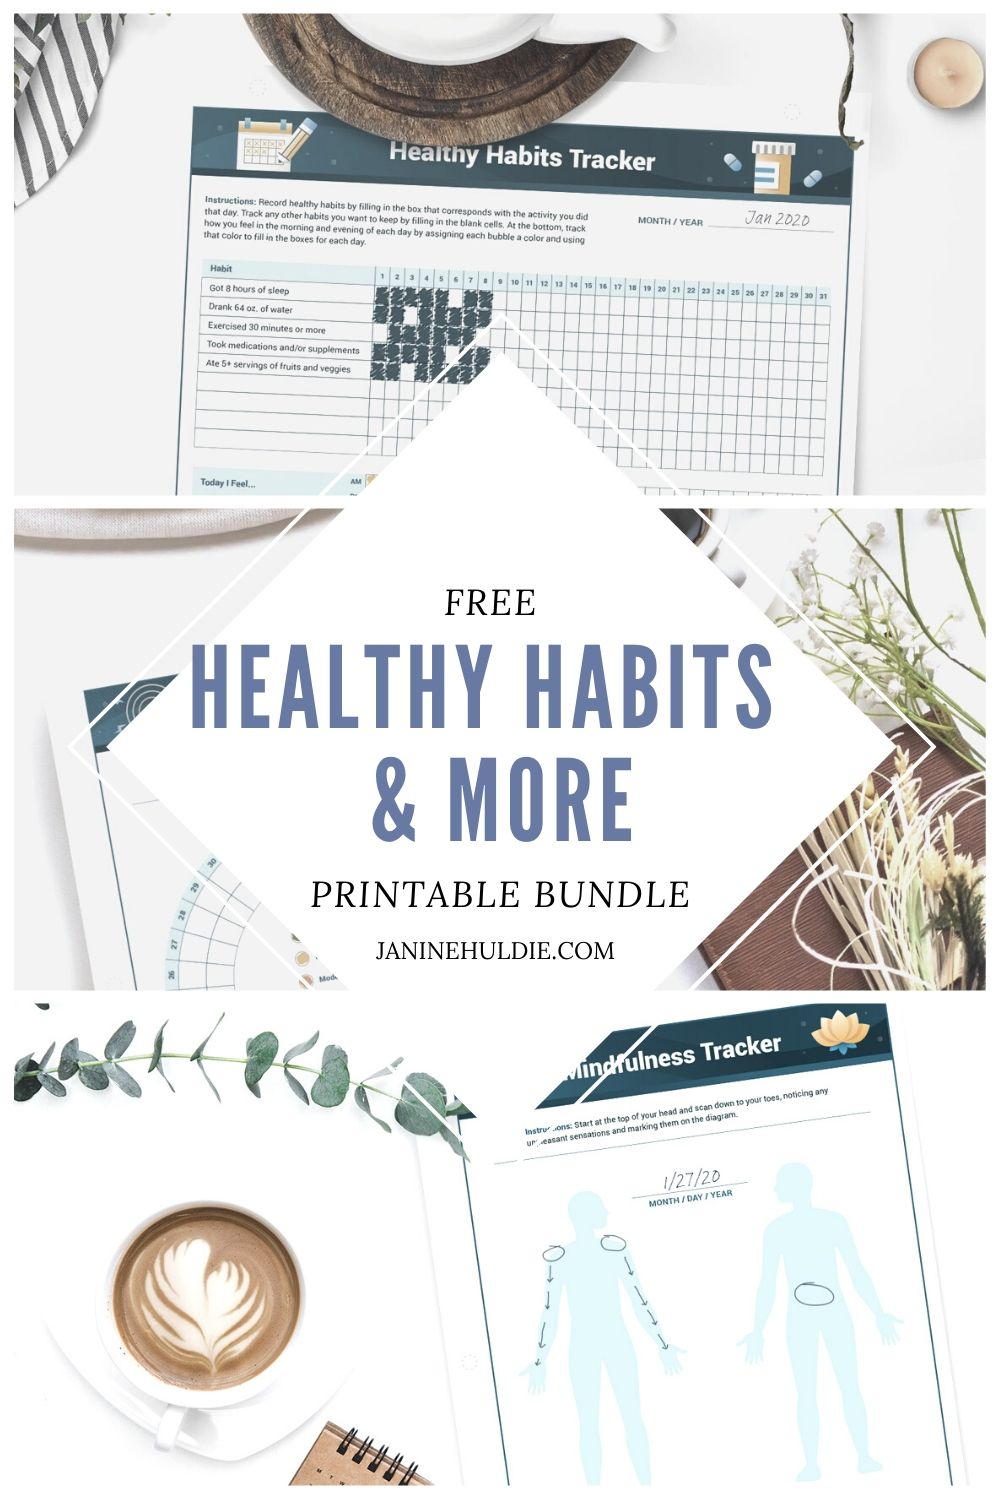 FREE Healthy Habits and More Printable Bundle